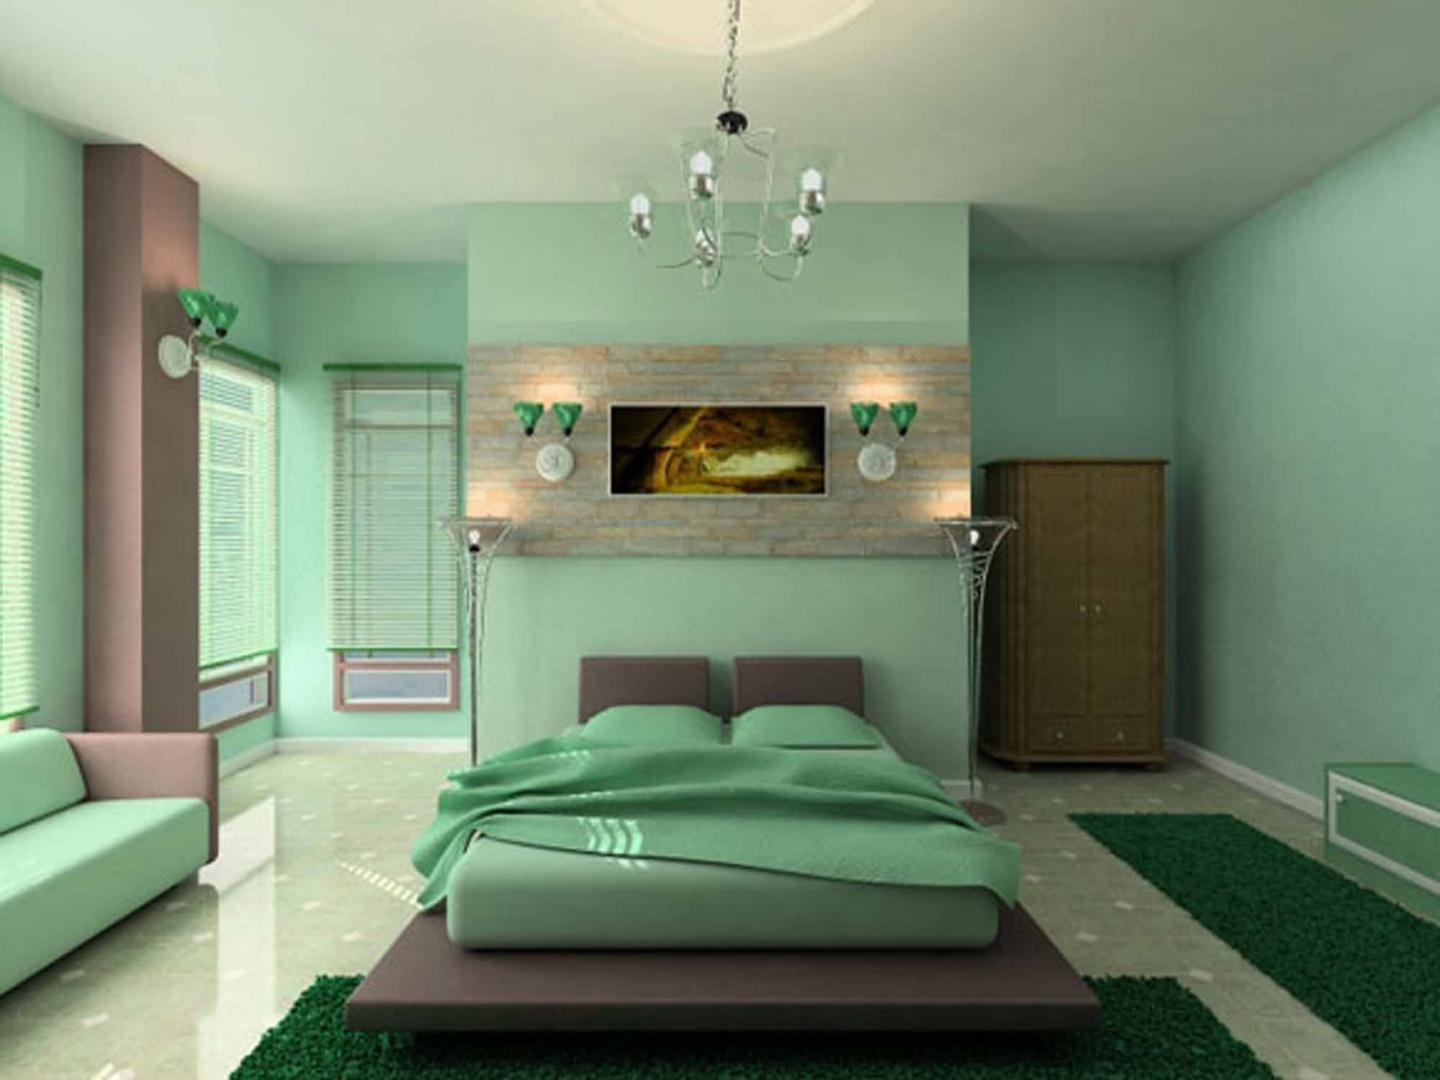 Cool Bedroom Ideas For Girls on Cool Bedroom Ideas For Small Rooms  id=51976